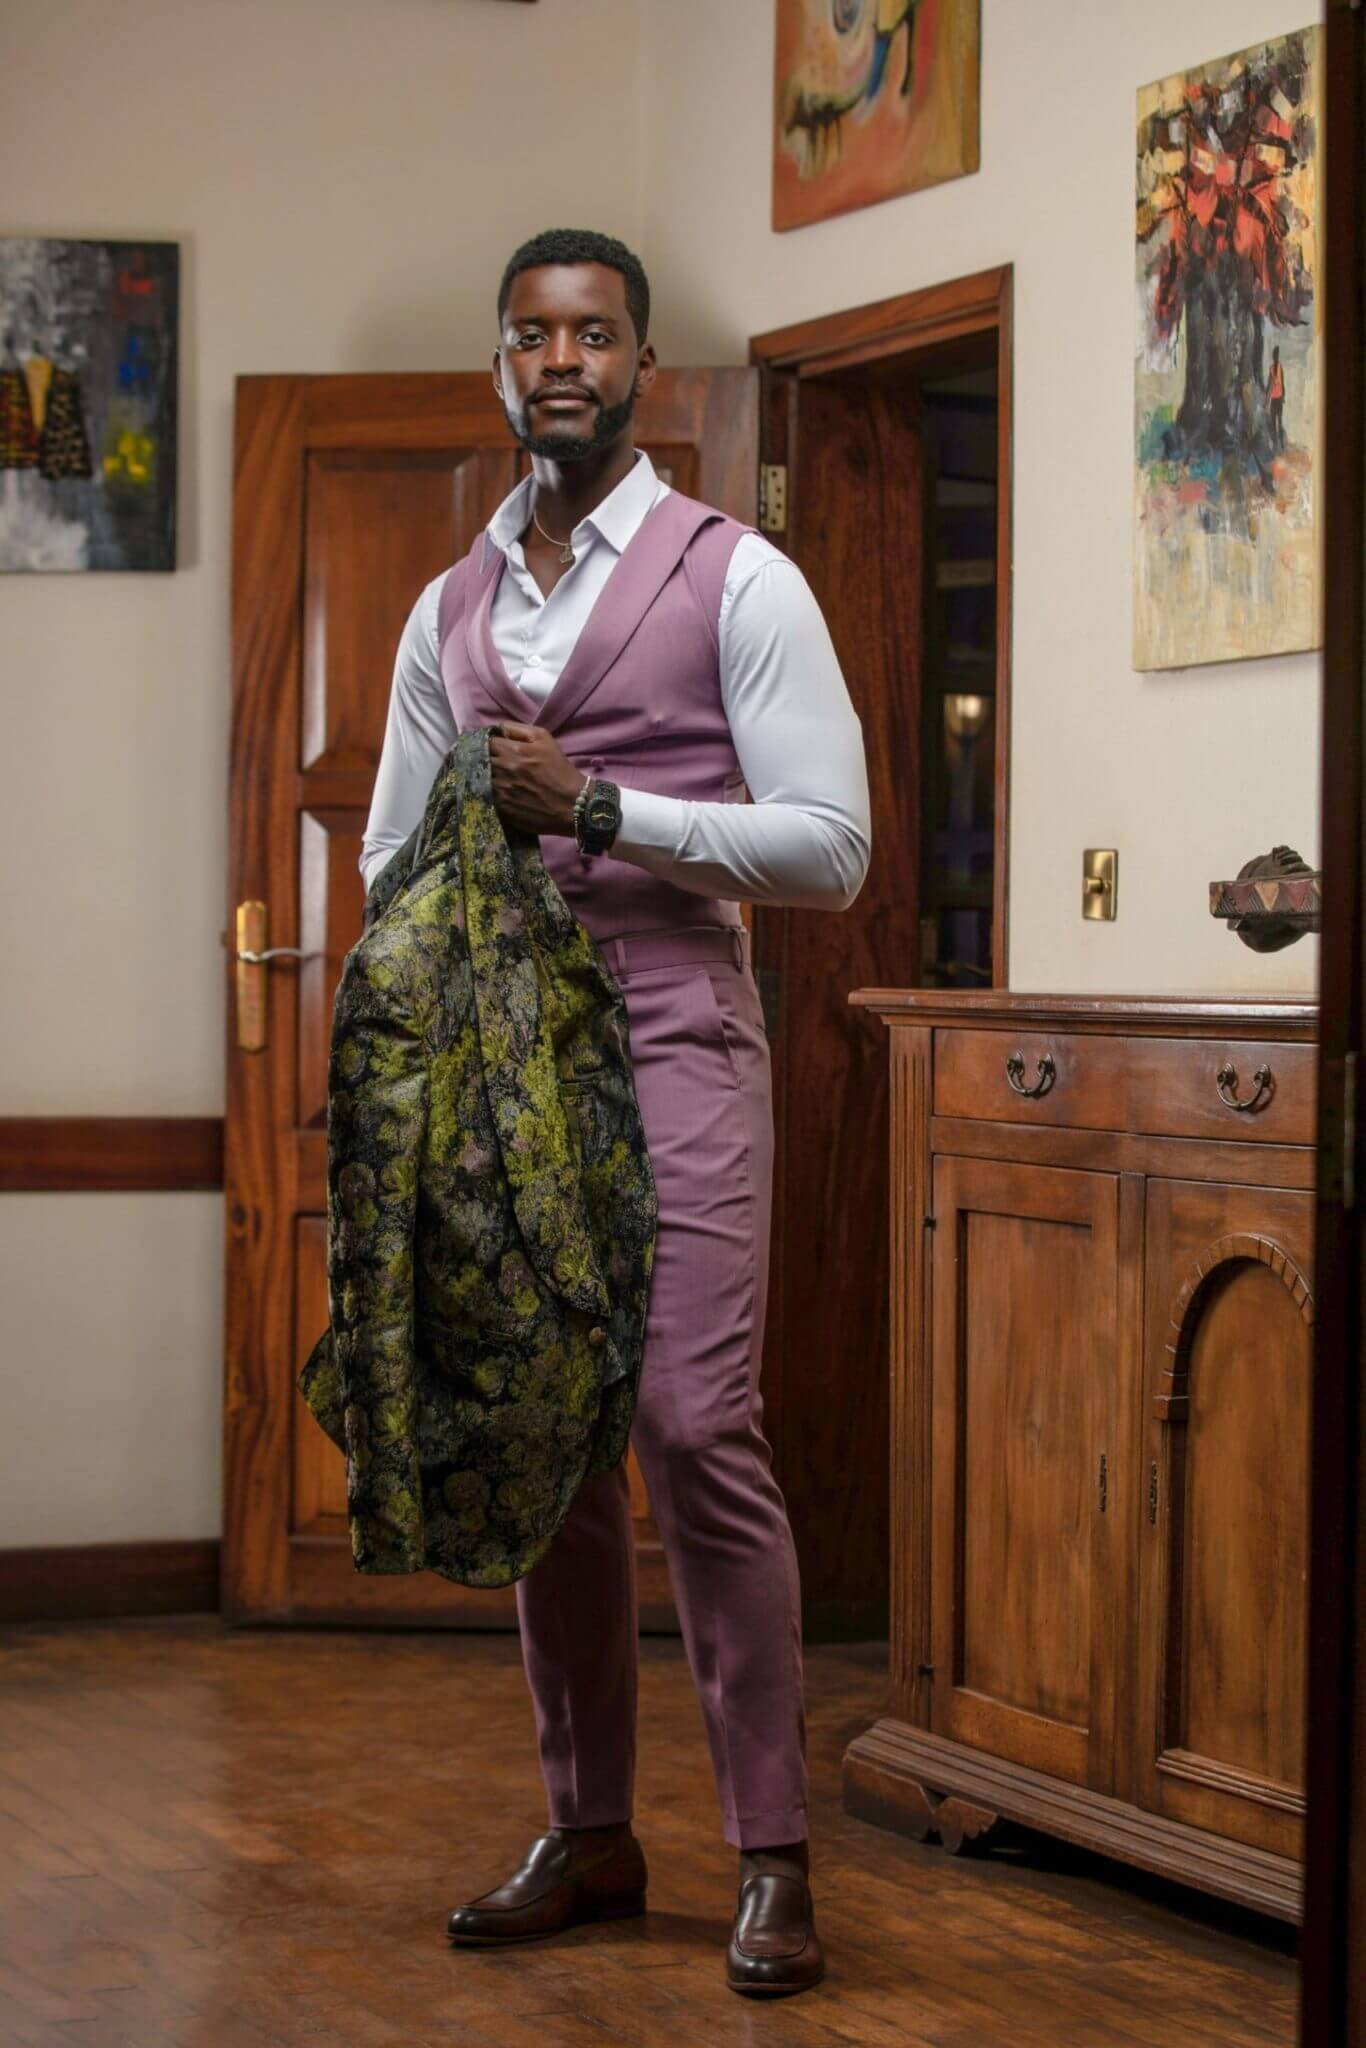 28Larry Casual Kampala Menswear scaled 2 scaled